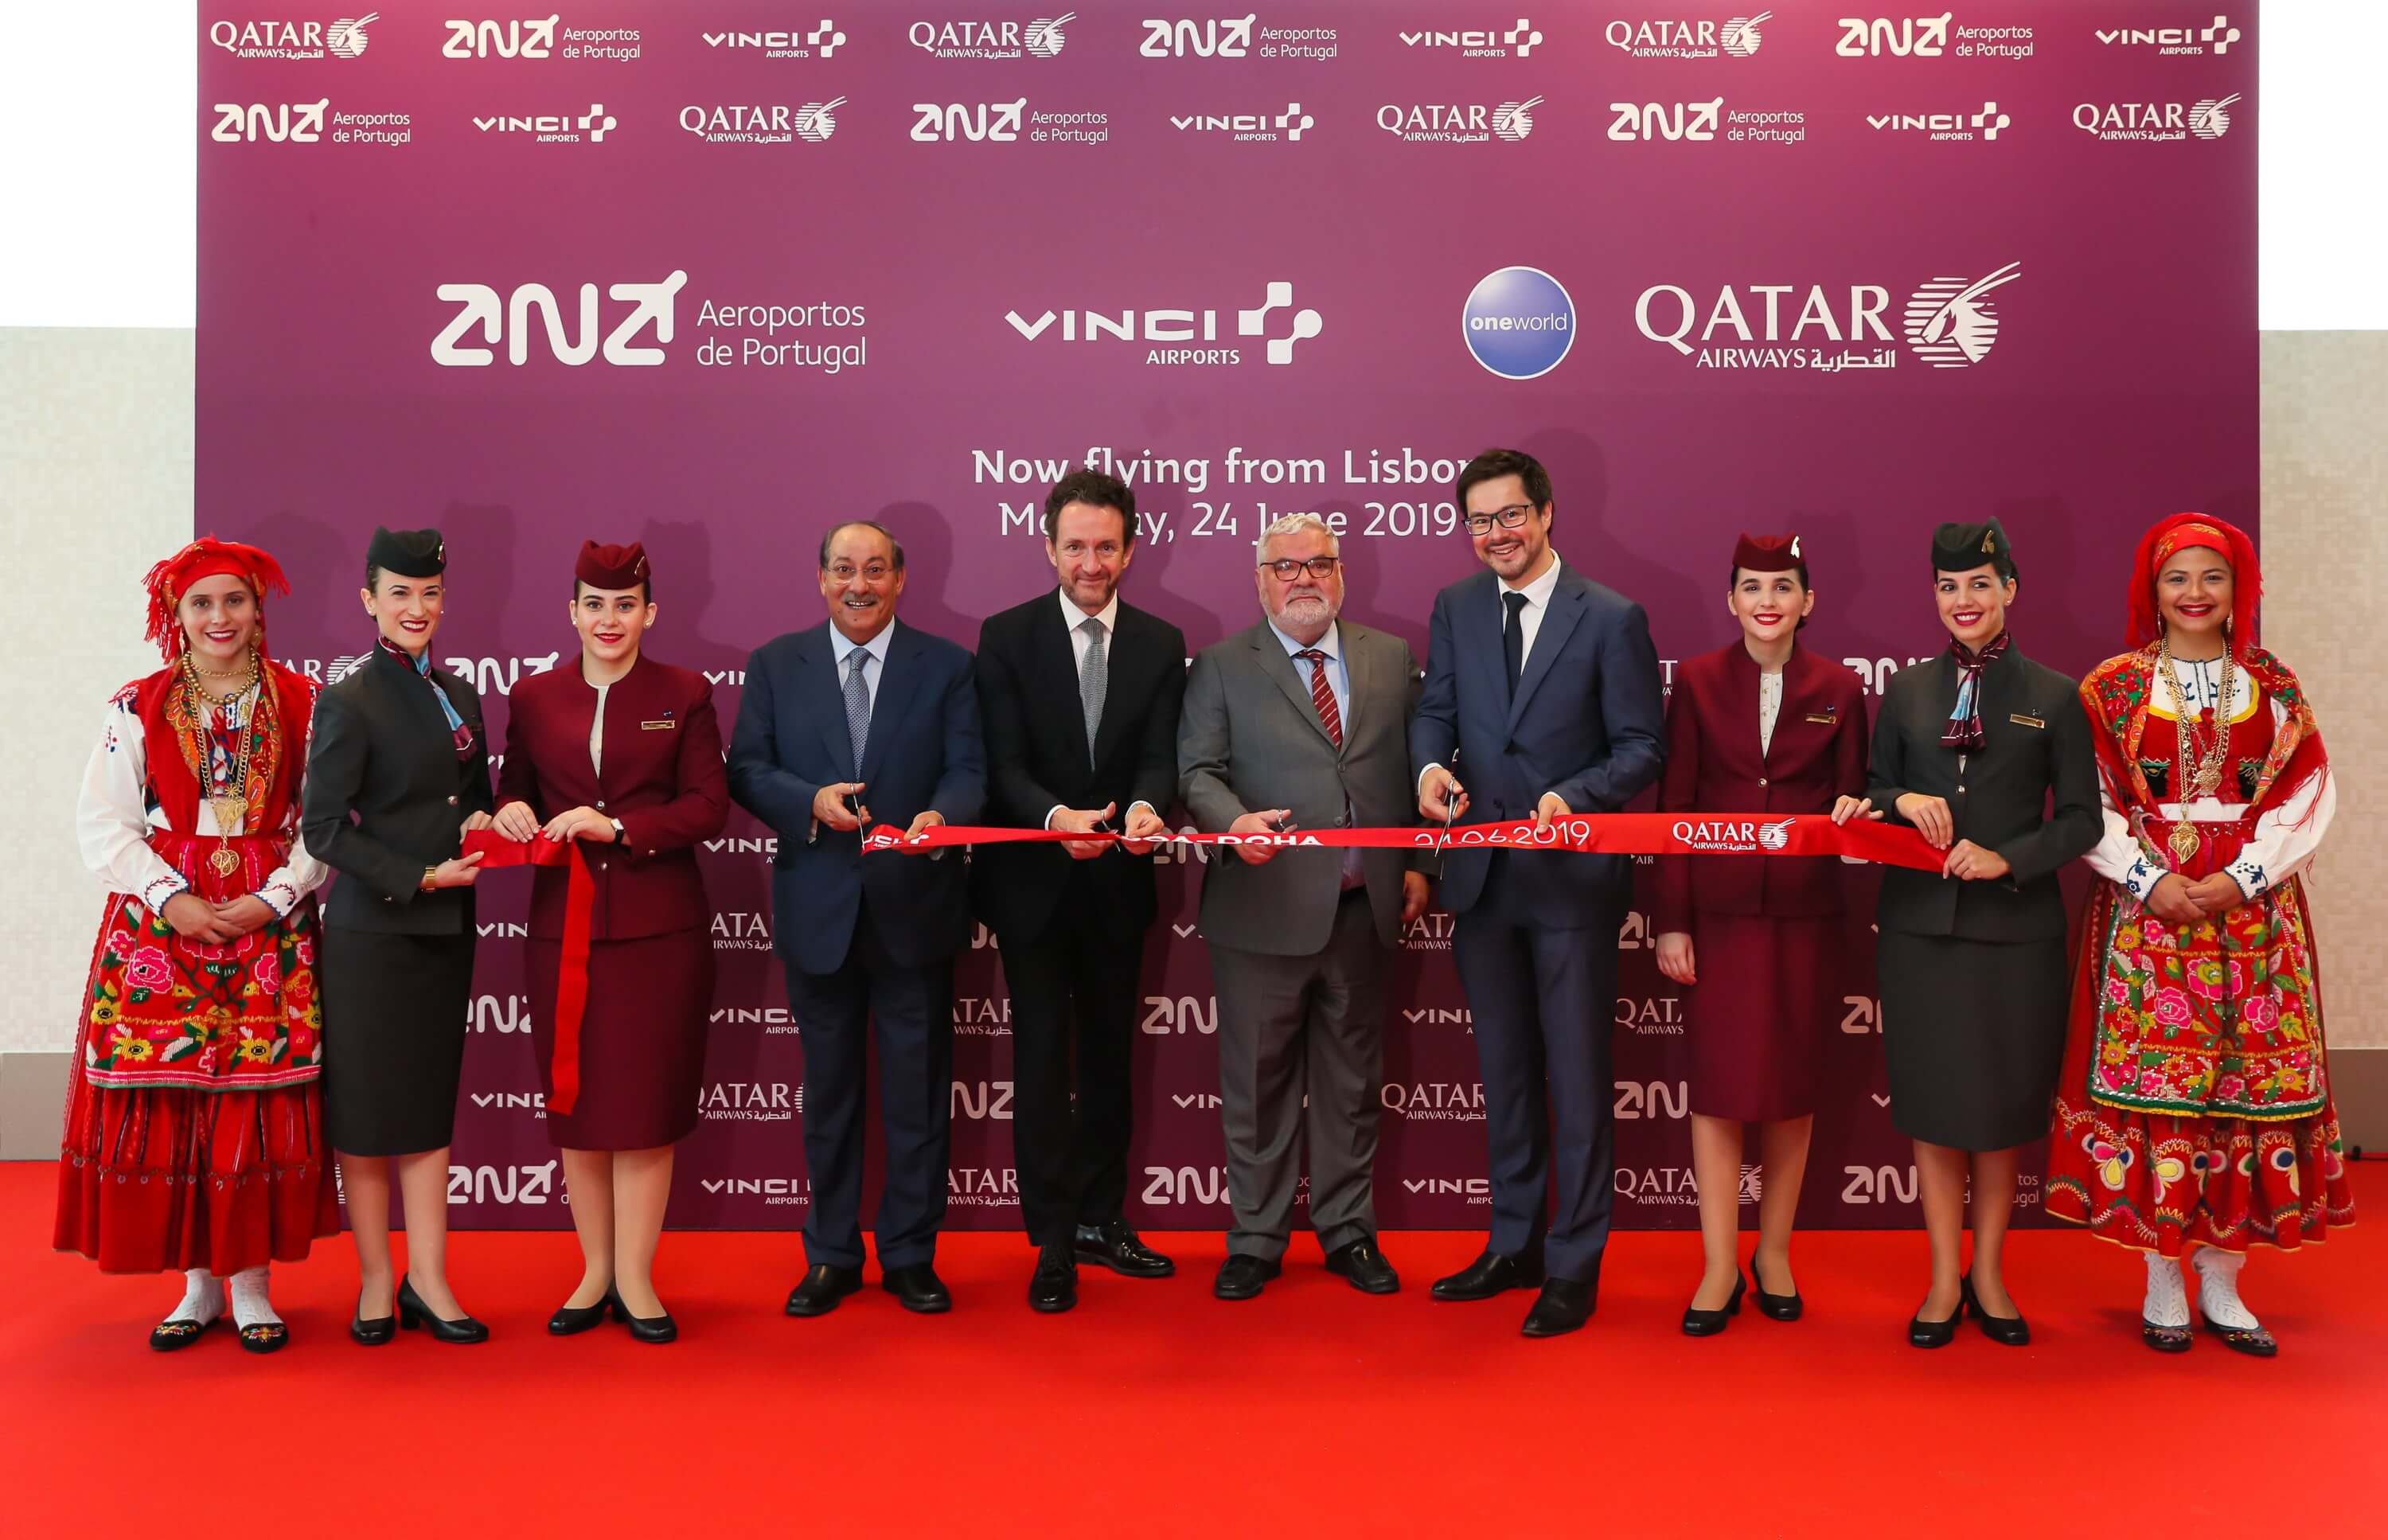 Qatar Airways touches down in Lisbon for the first time